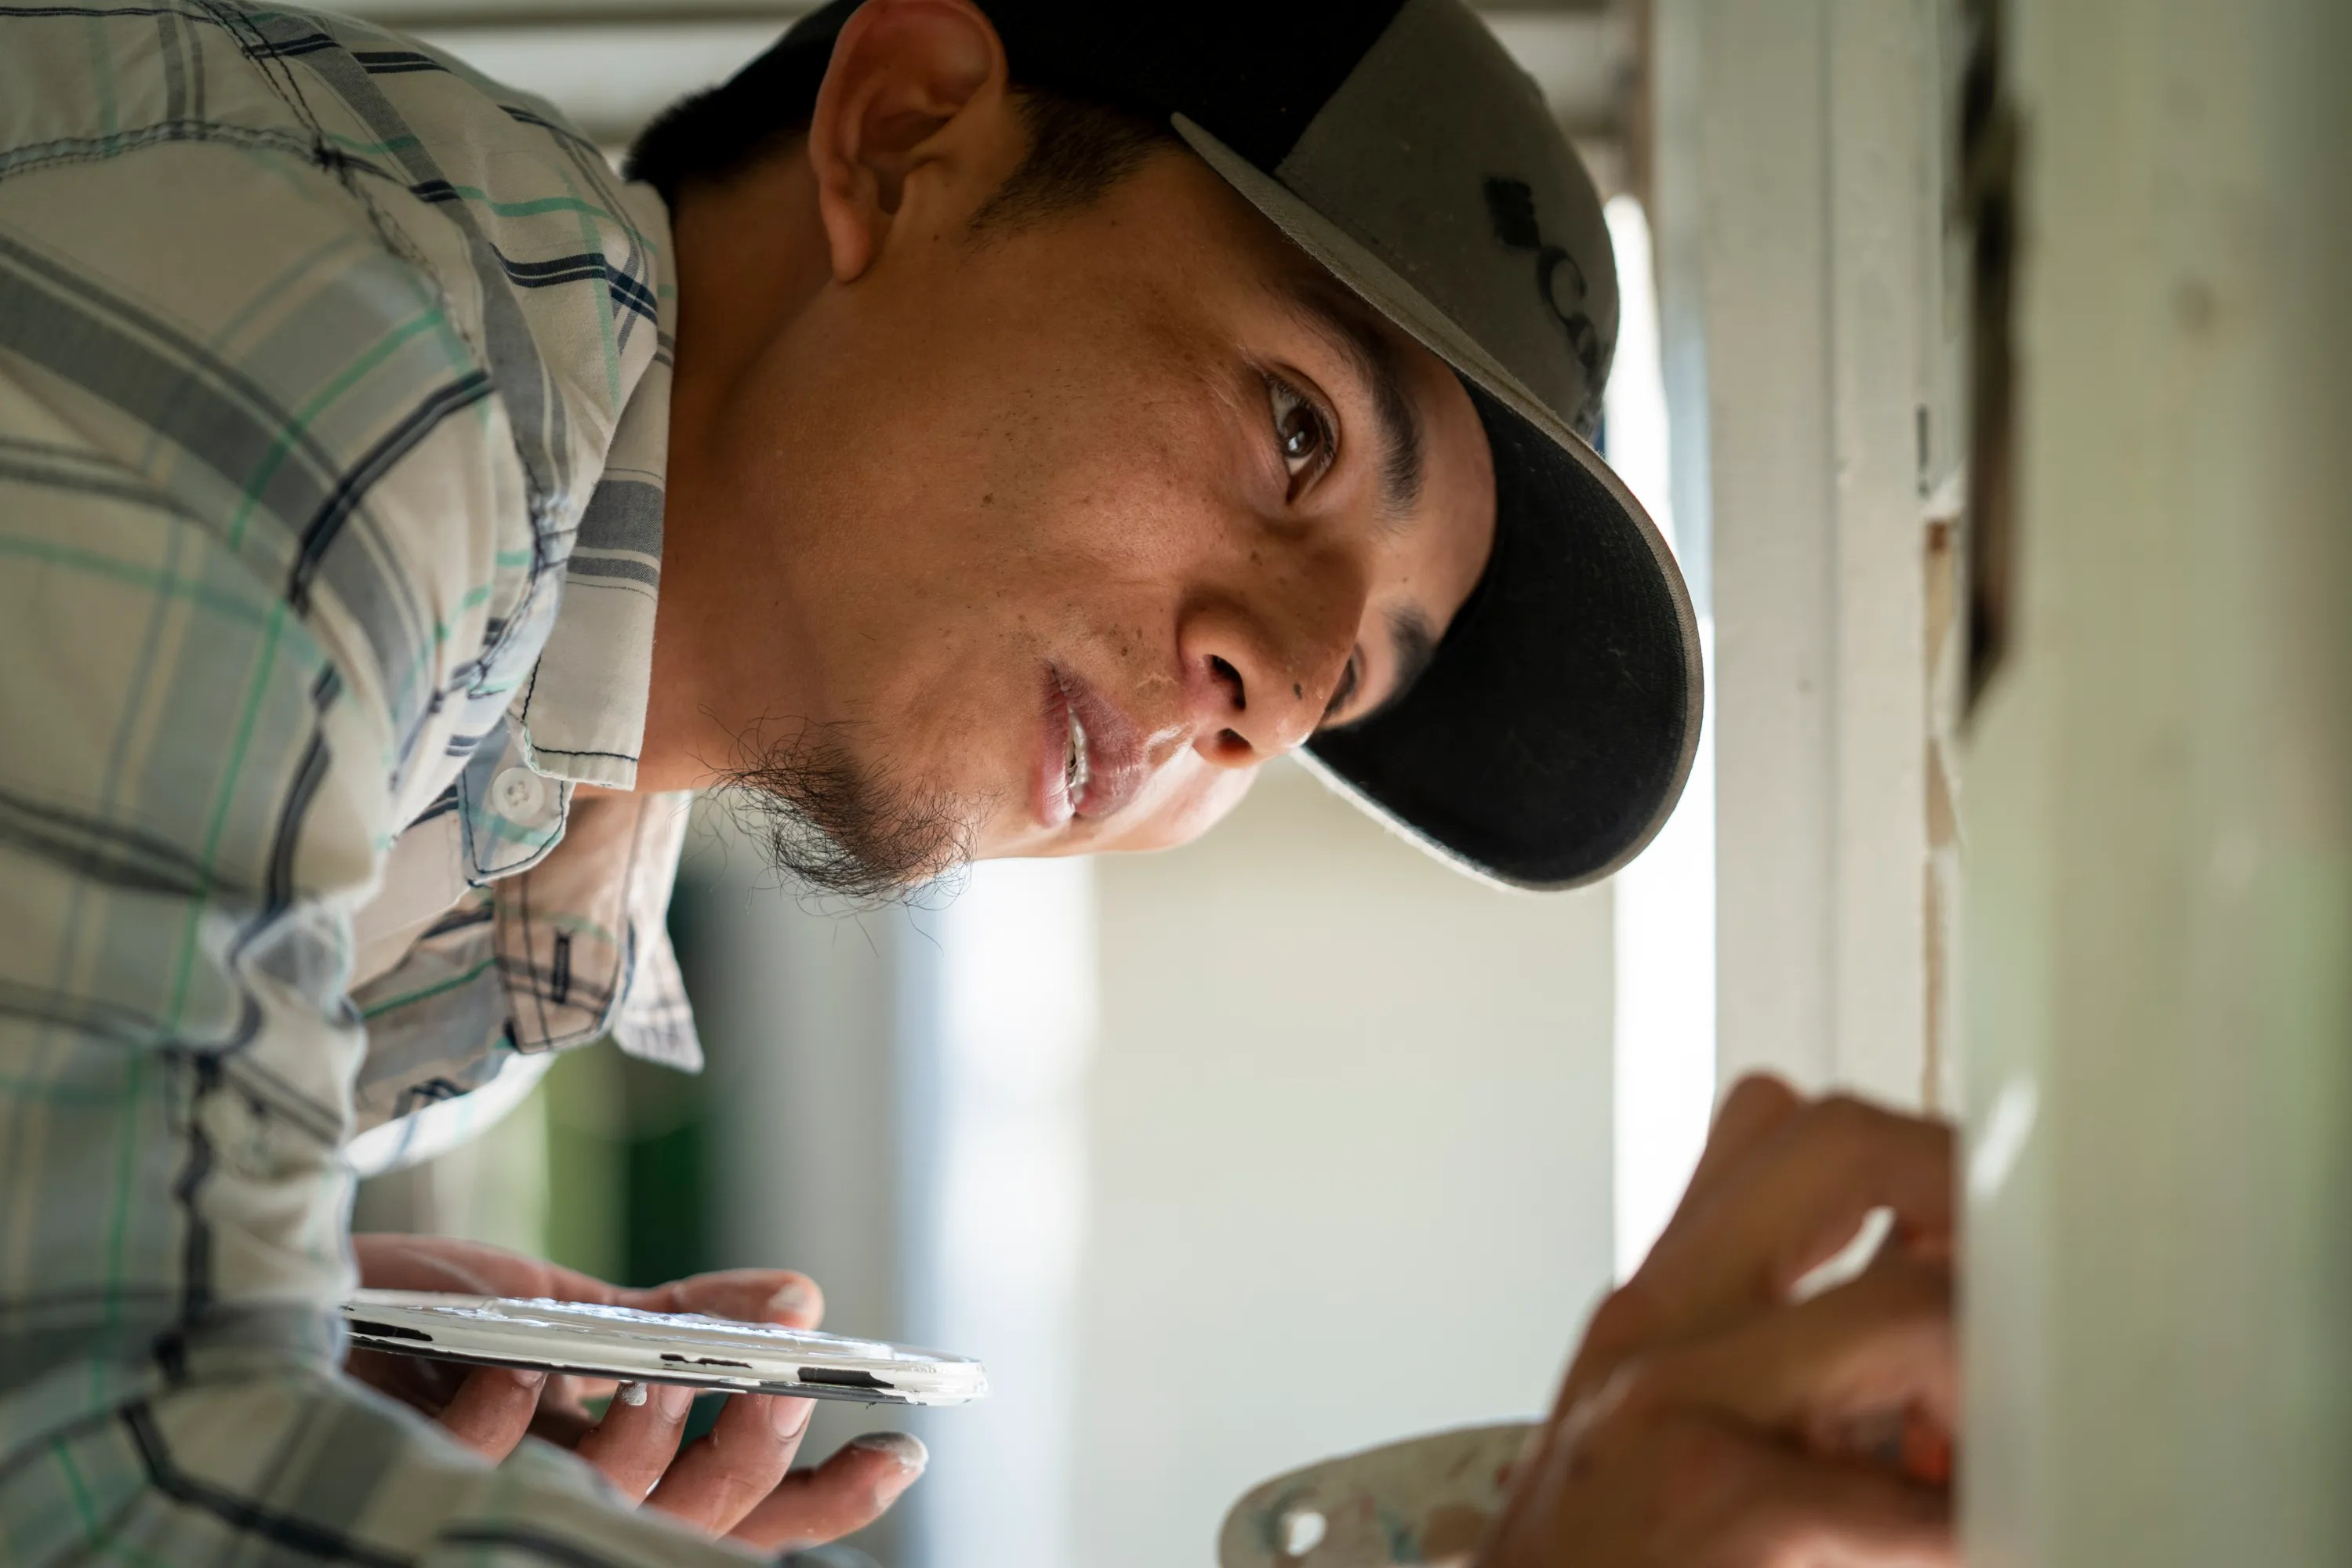 Francis Portillo paints windows at a home before an inspection in Jacksonville, Fla. on April 8, 2021.